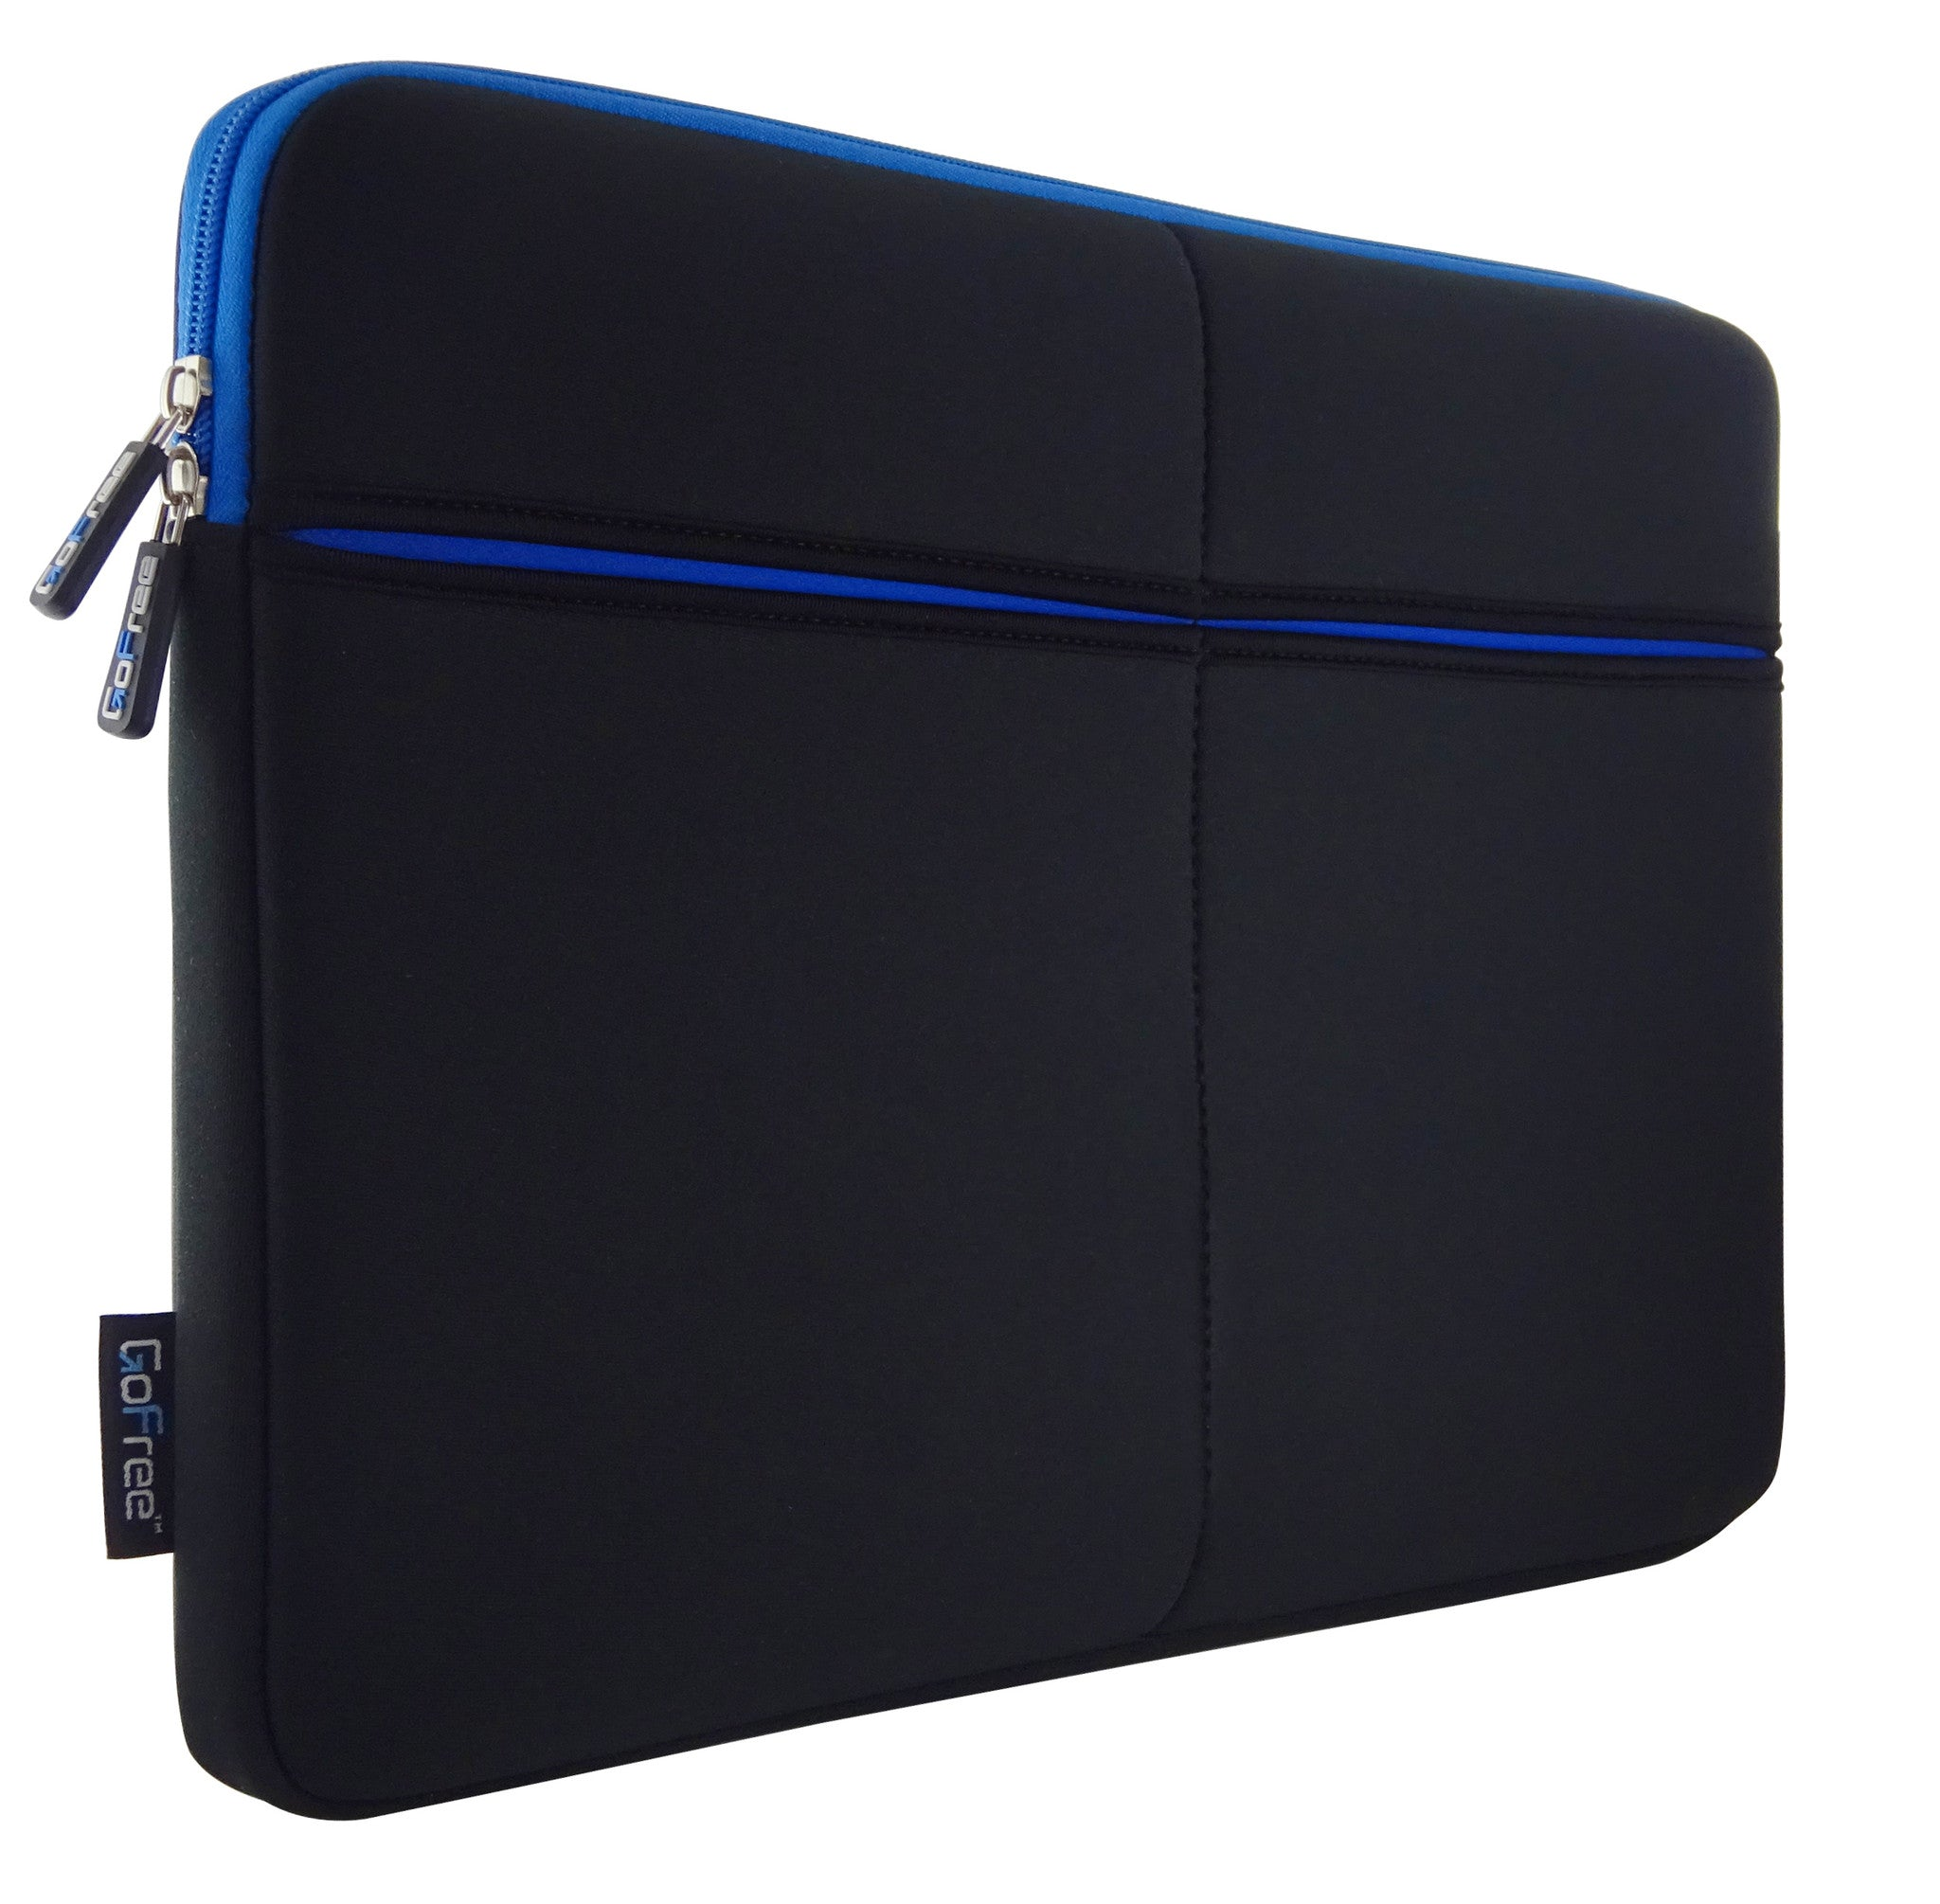 GoFree Slim Line 13 inch Laptop Sleeve - Super Compact & Uber Stylish -  Black w/ Azure Blue Accents